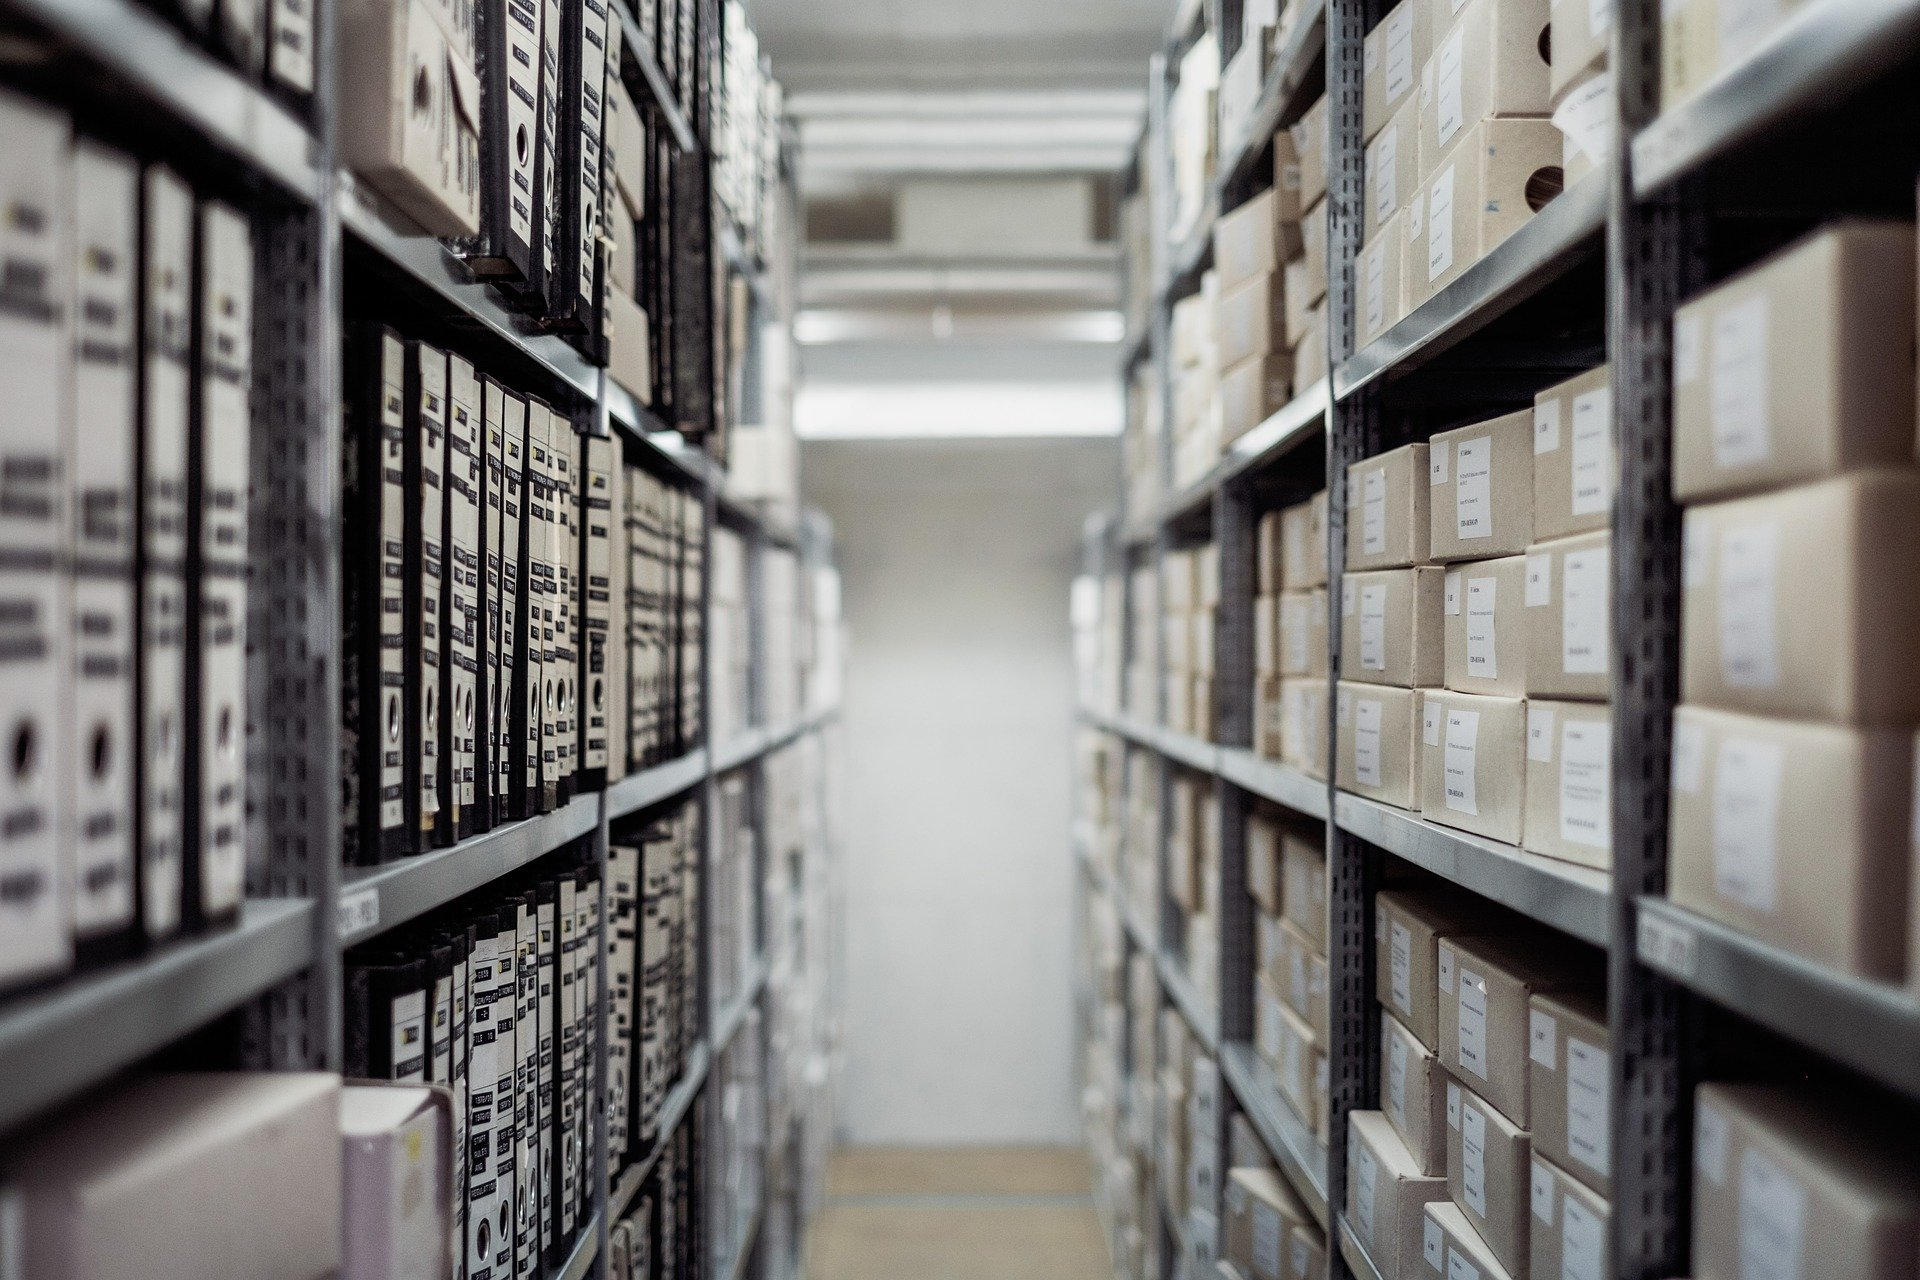 Does Your Company Need A Texas Warehouse For Increased Storage And Capabilities?